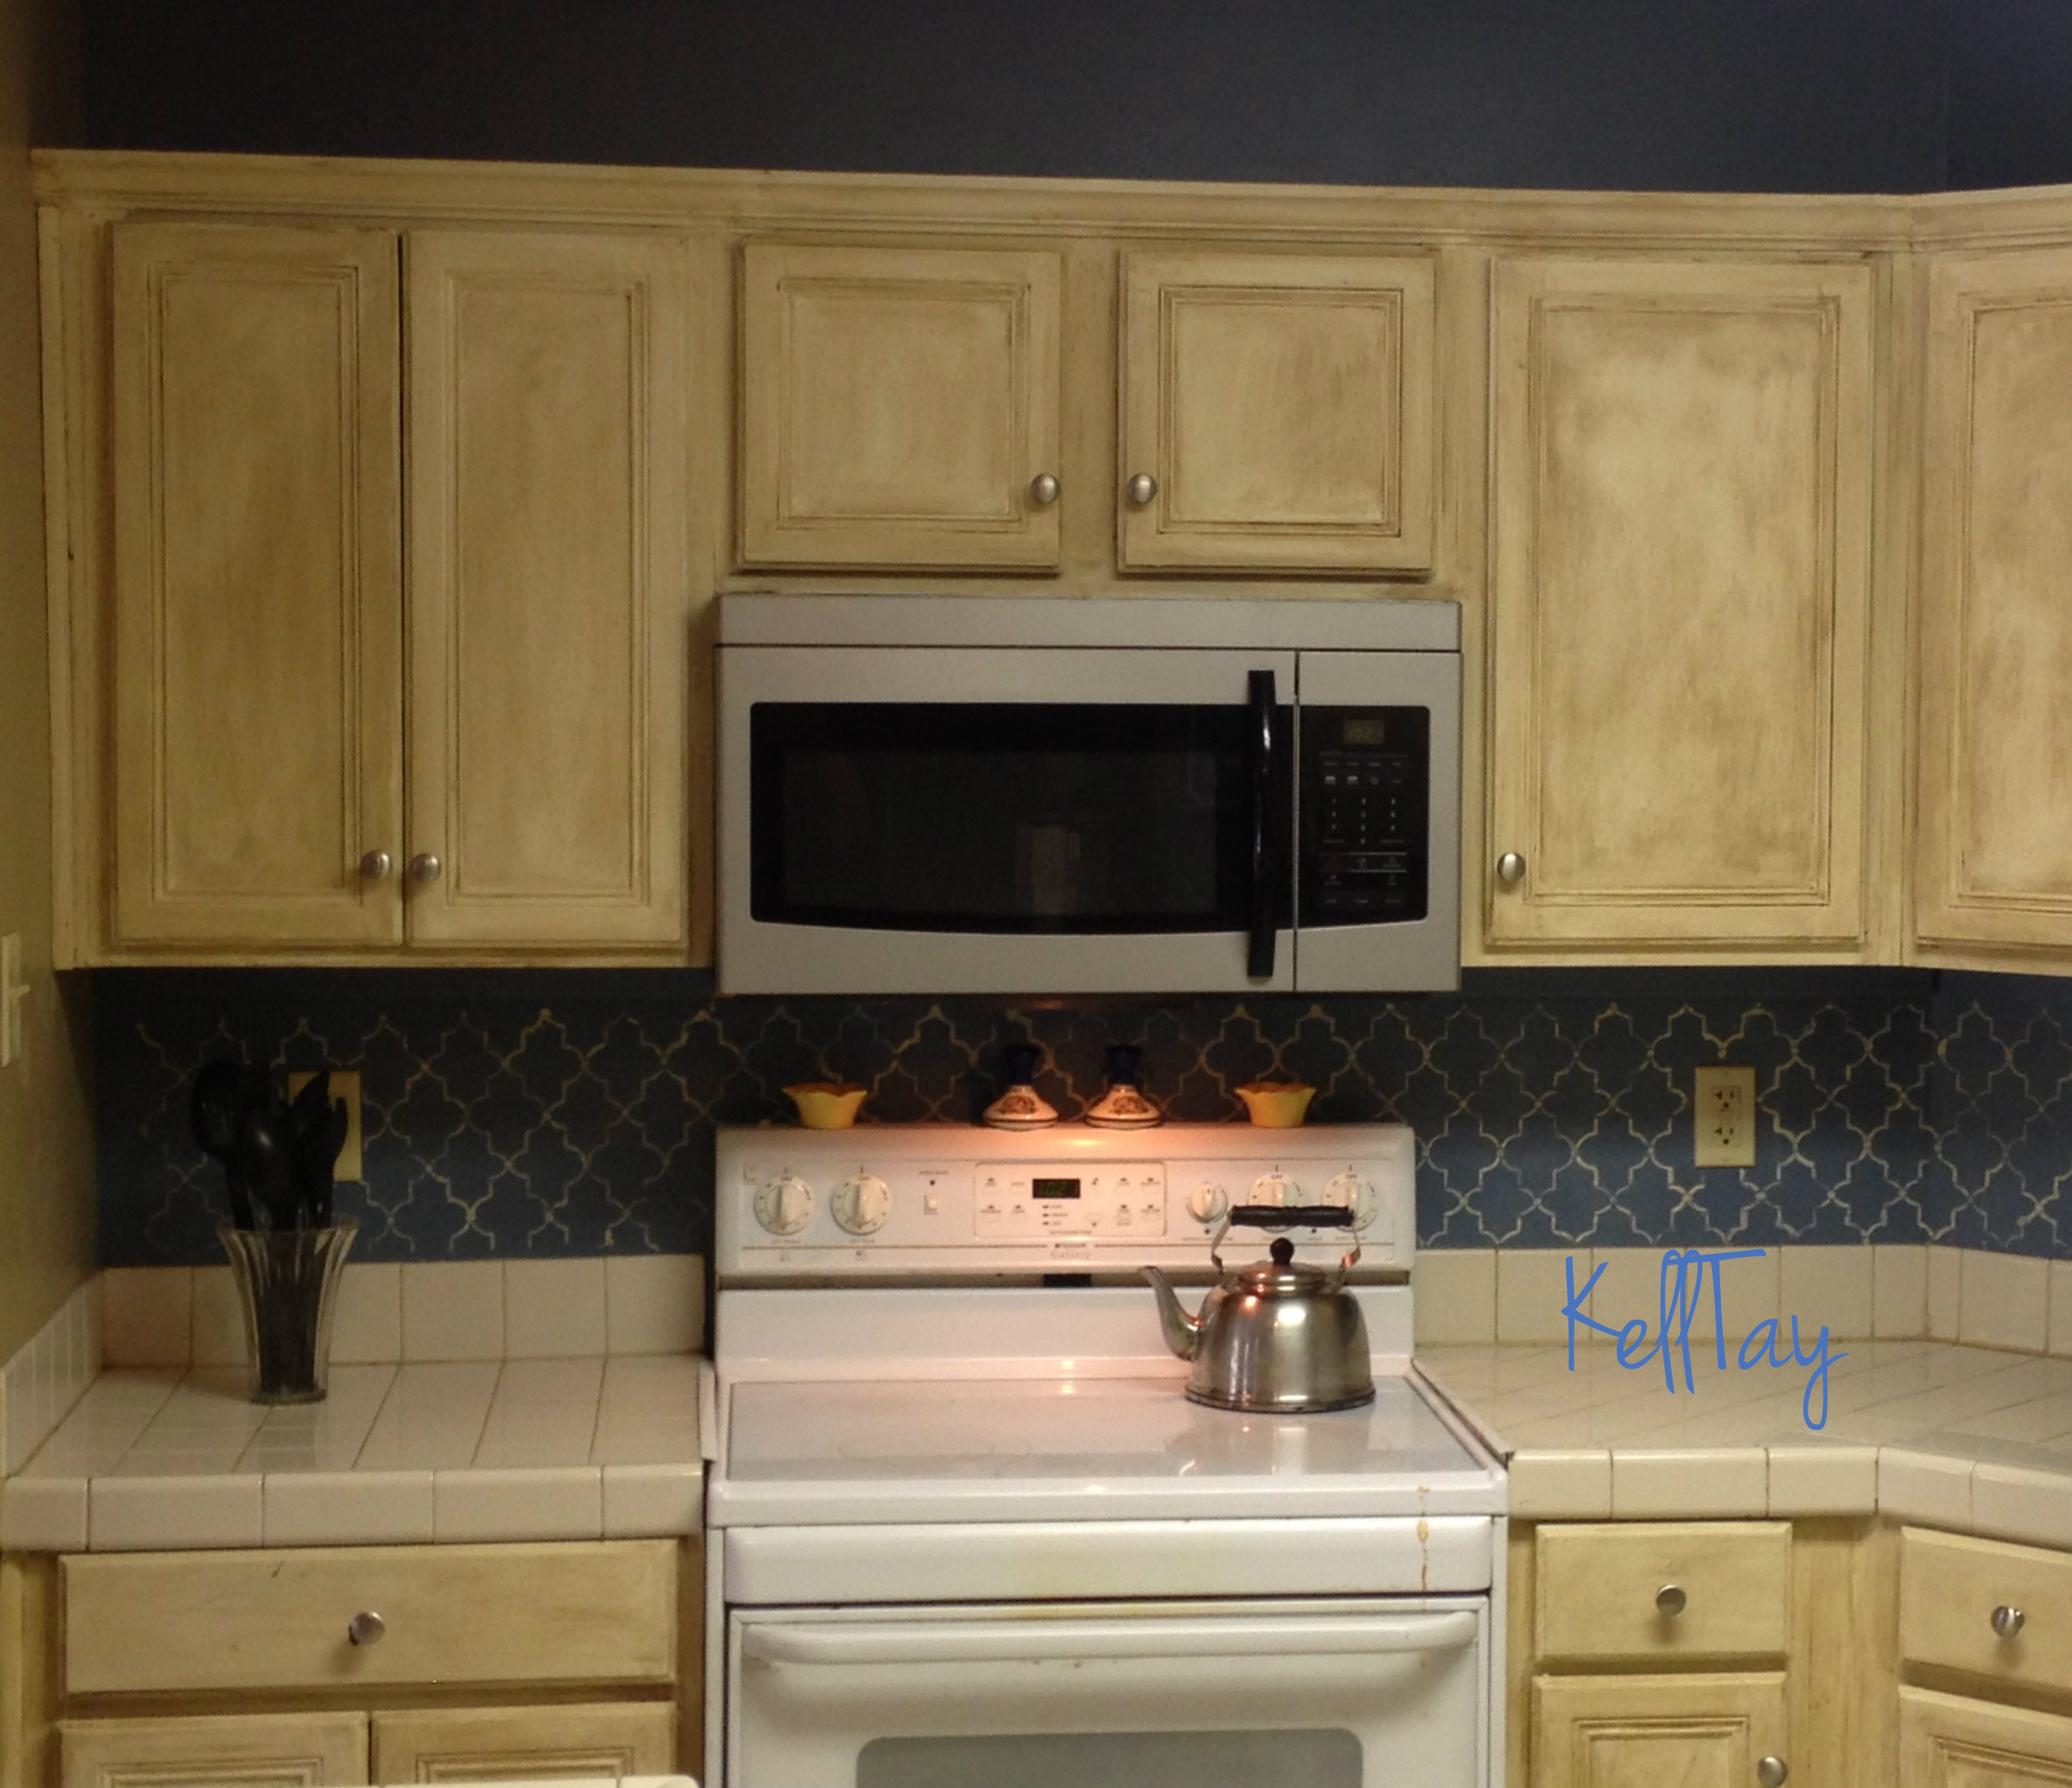 Furniture renewal kitchen cabinets kelltay faith folk for Renew it kitchen cabinets